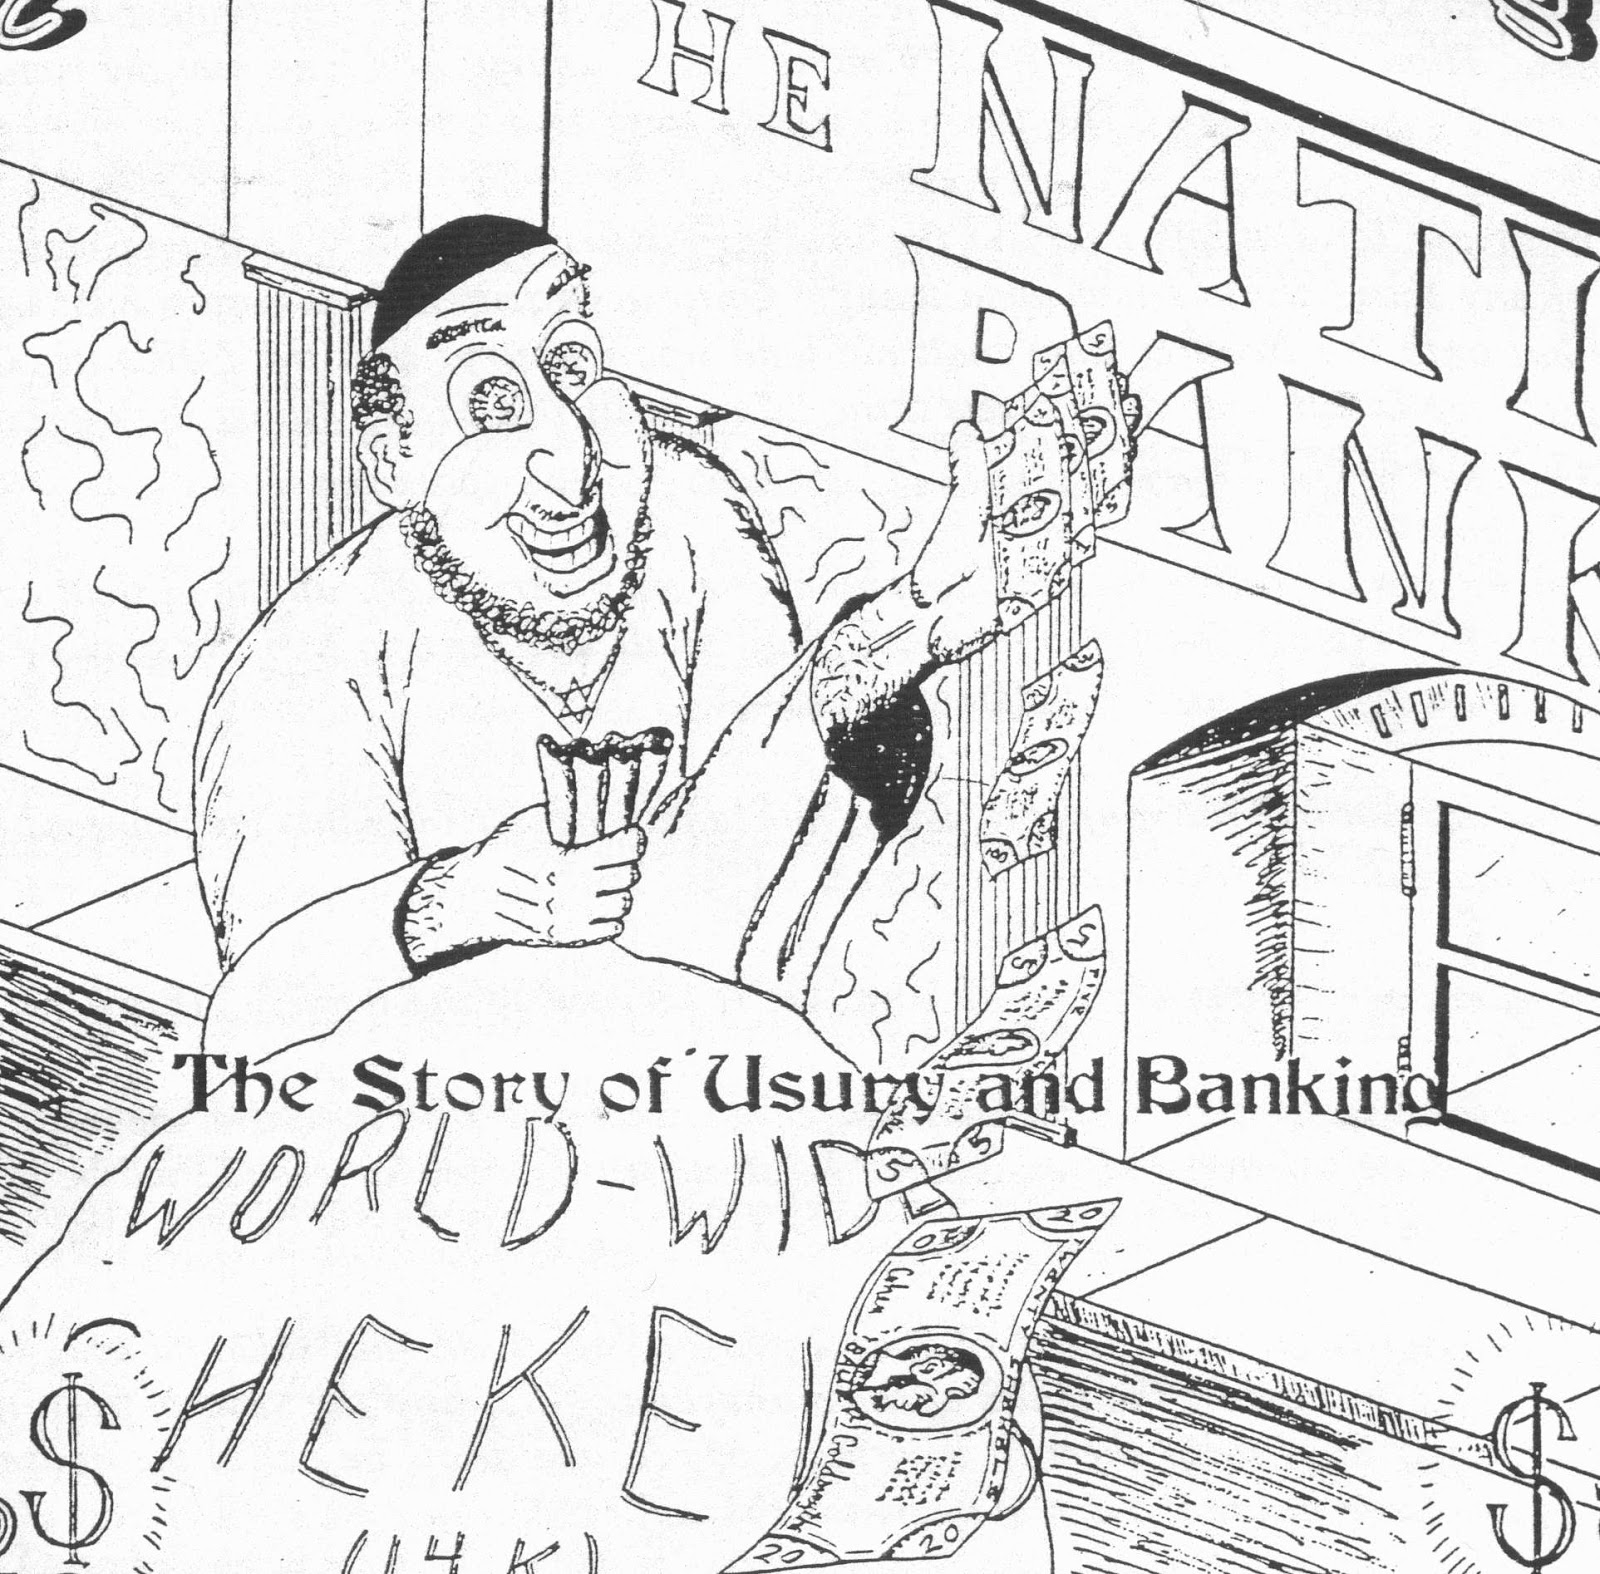 digging into freedom's true meaning: the story of usury and banking